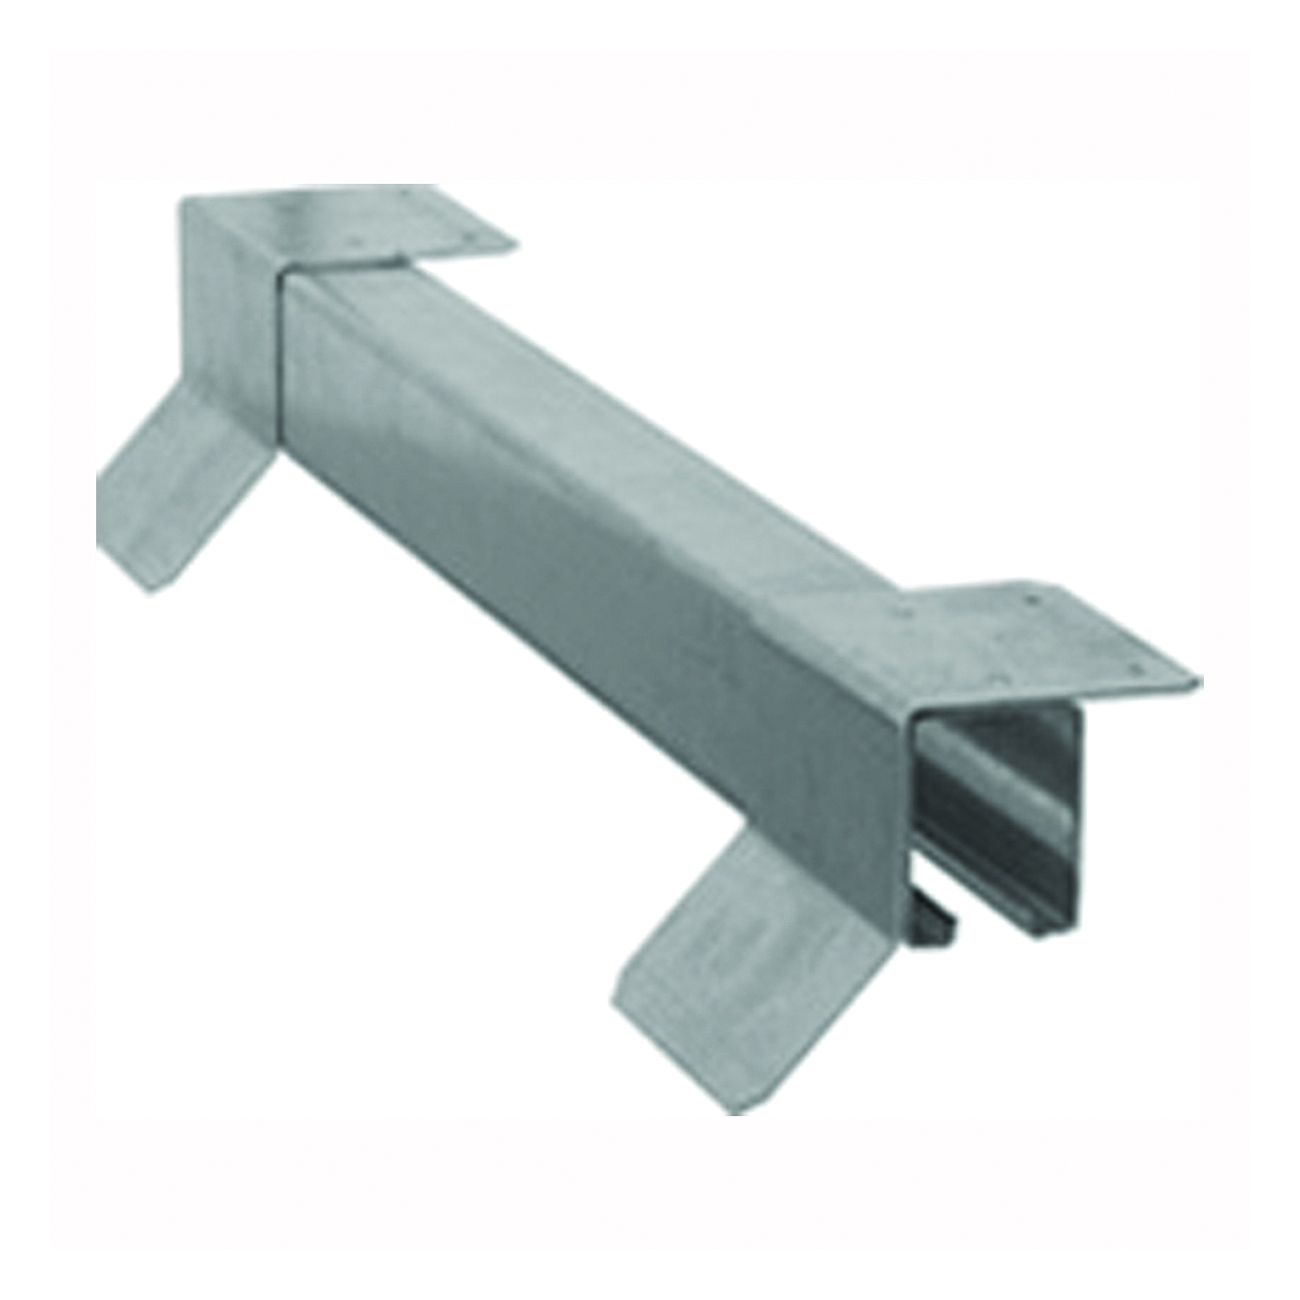 Picture of National Hardware N142-158 Box Rail, Steel, Galvanized, 12 ft L